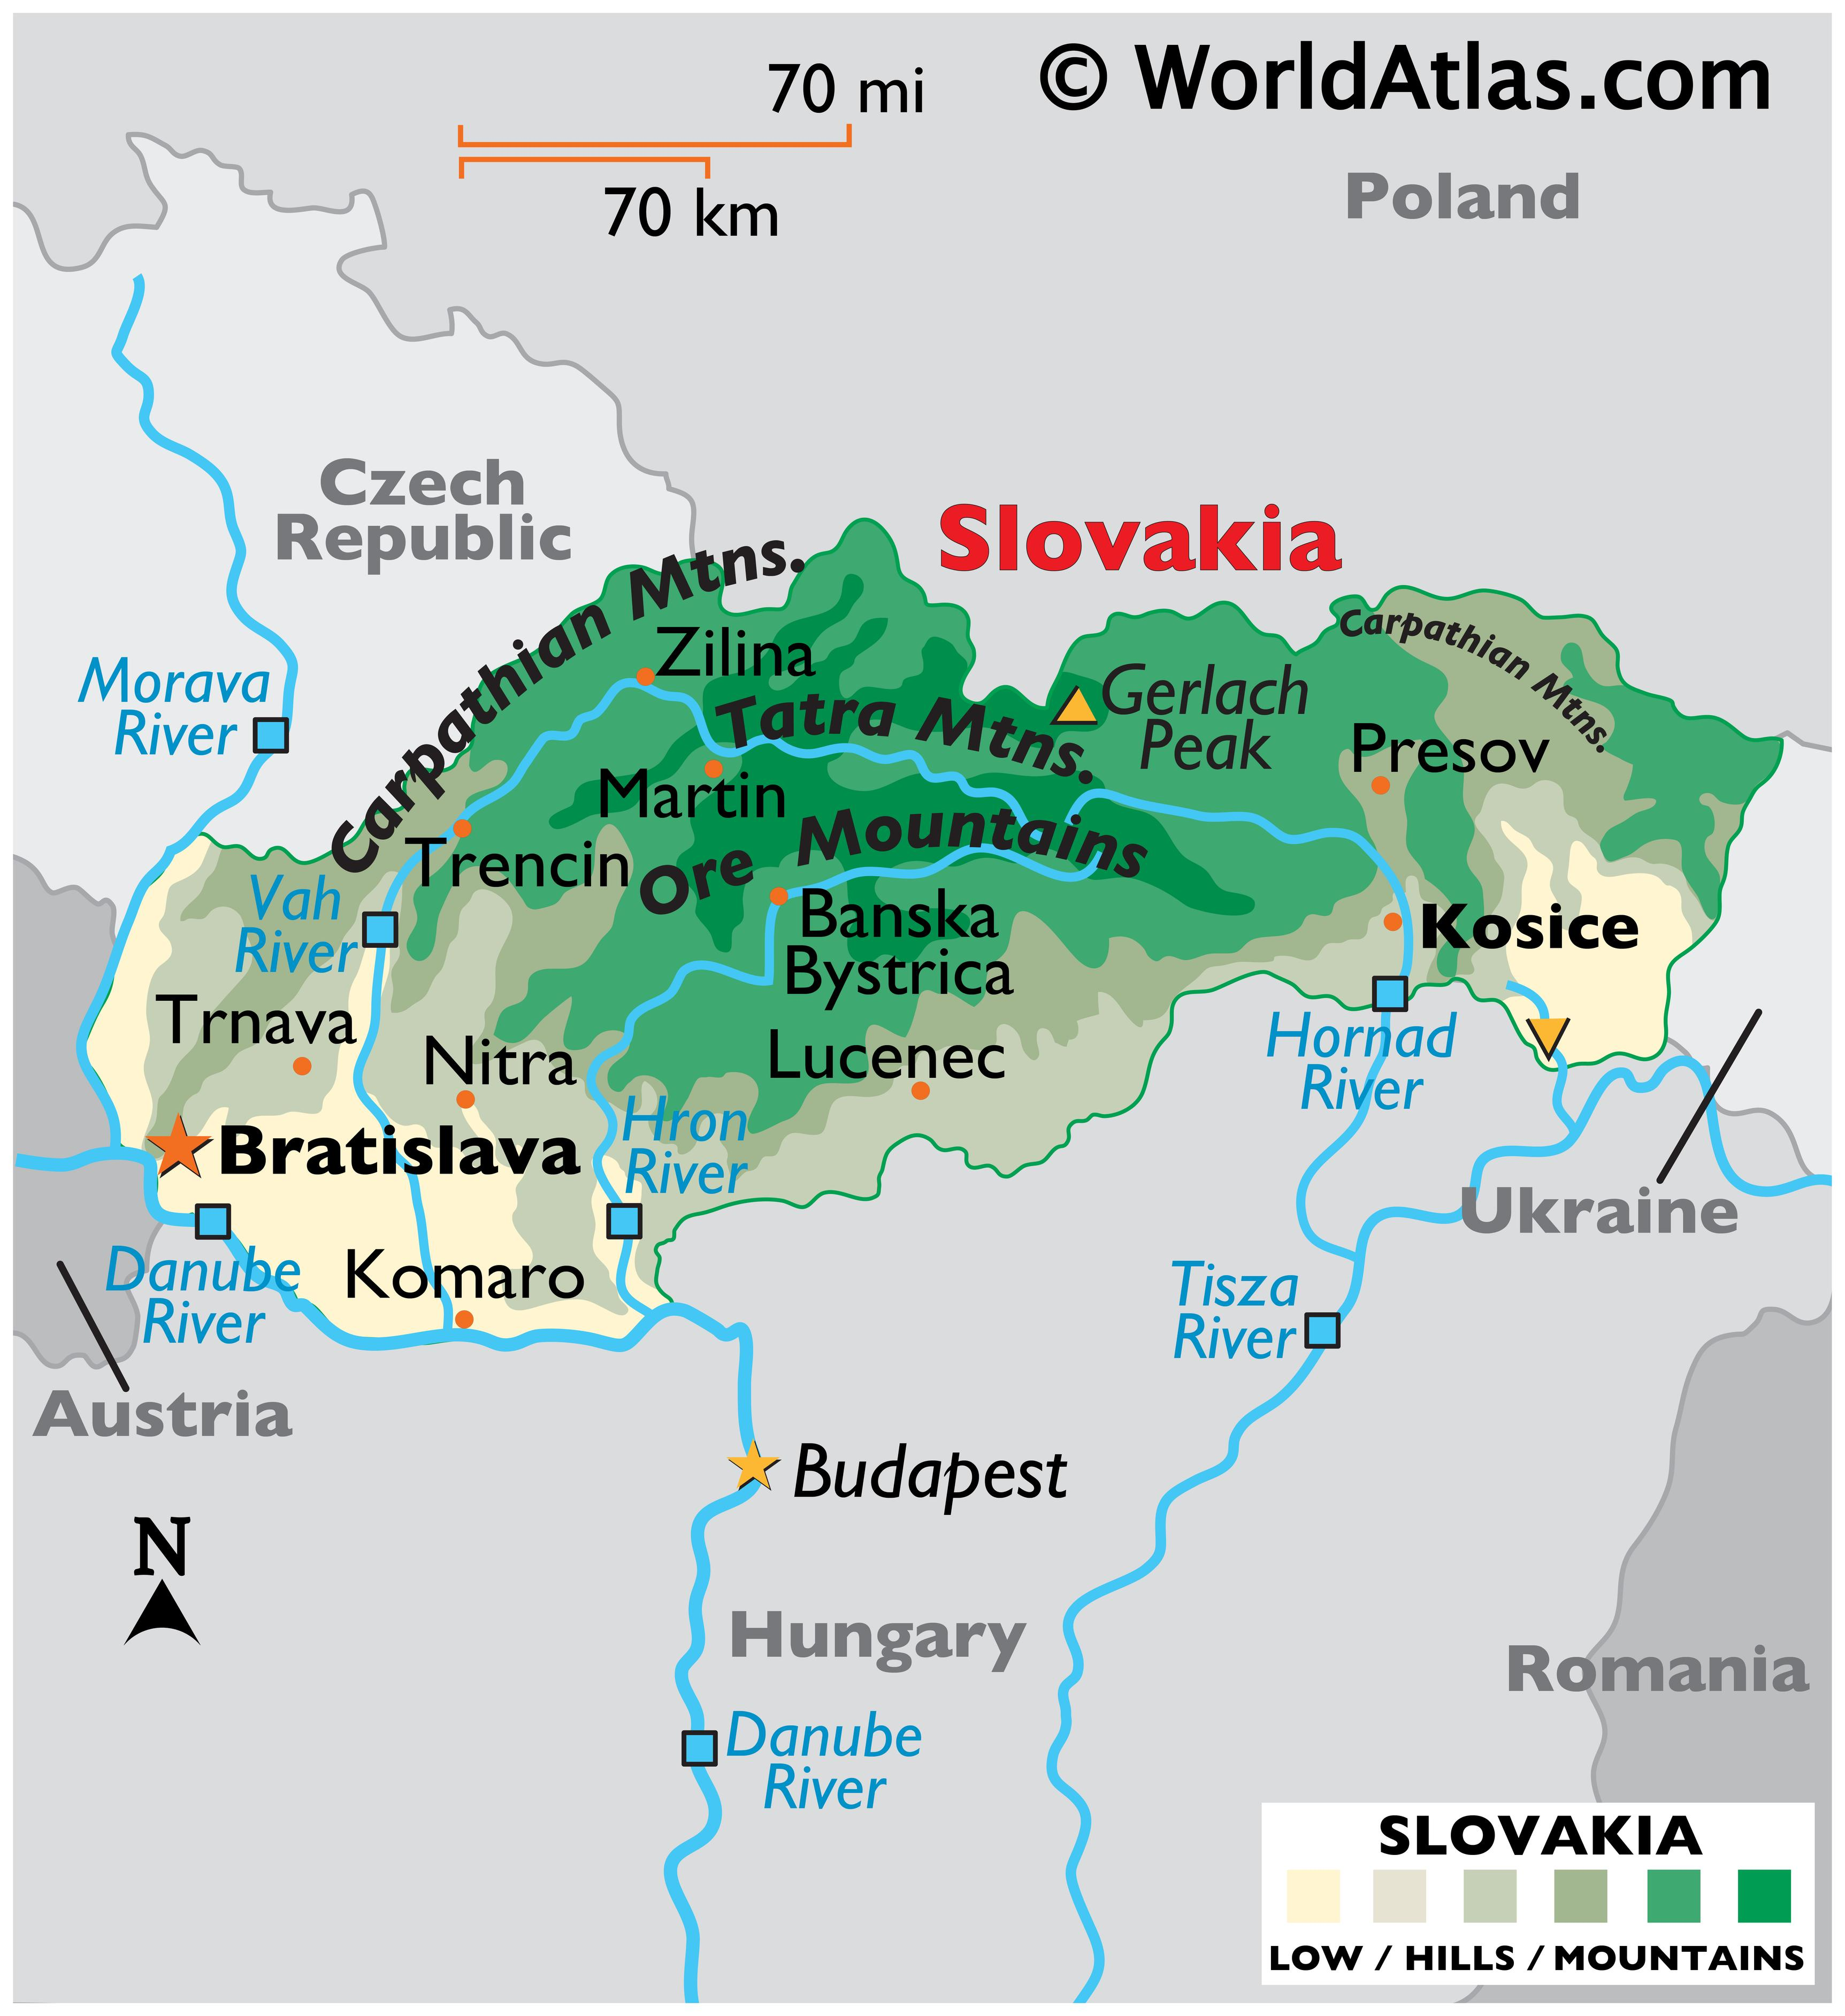 Physical Map of Slovakia showing terrain, major mountain ranges, highest and lowest points, major rivers, international boundaries, etc.